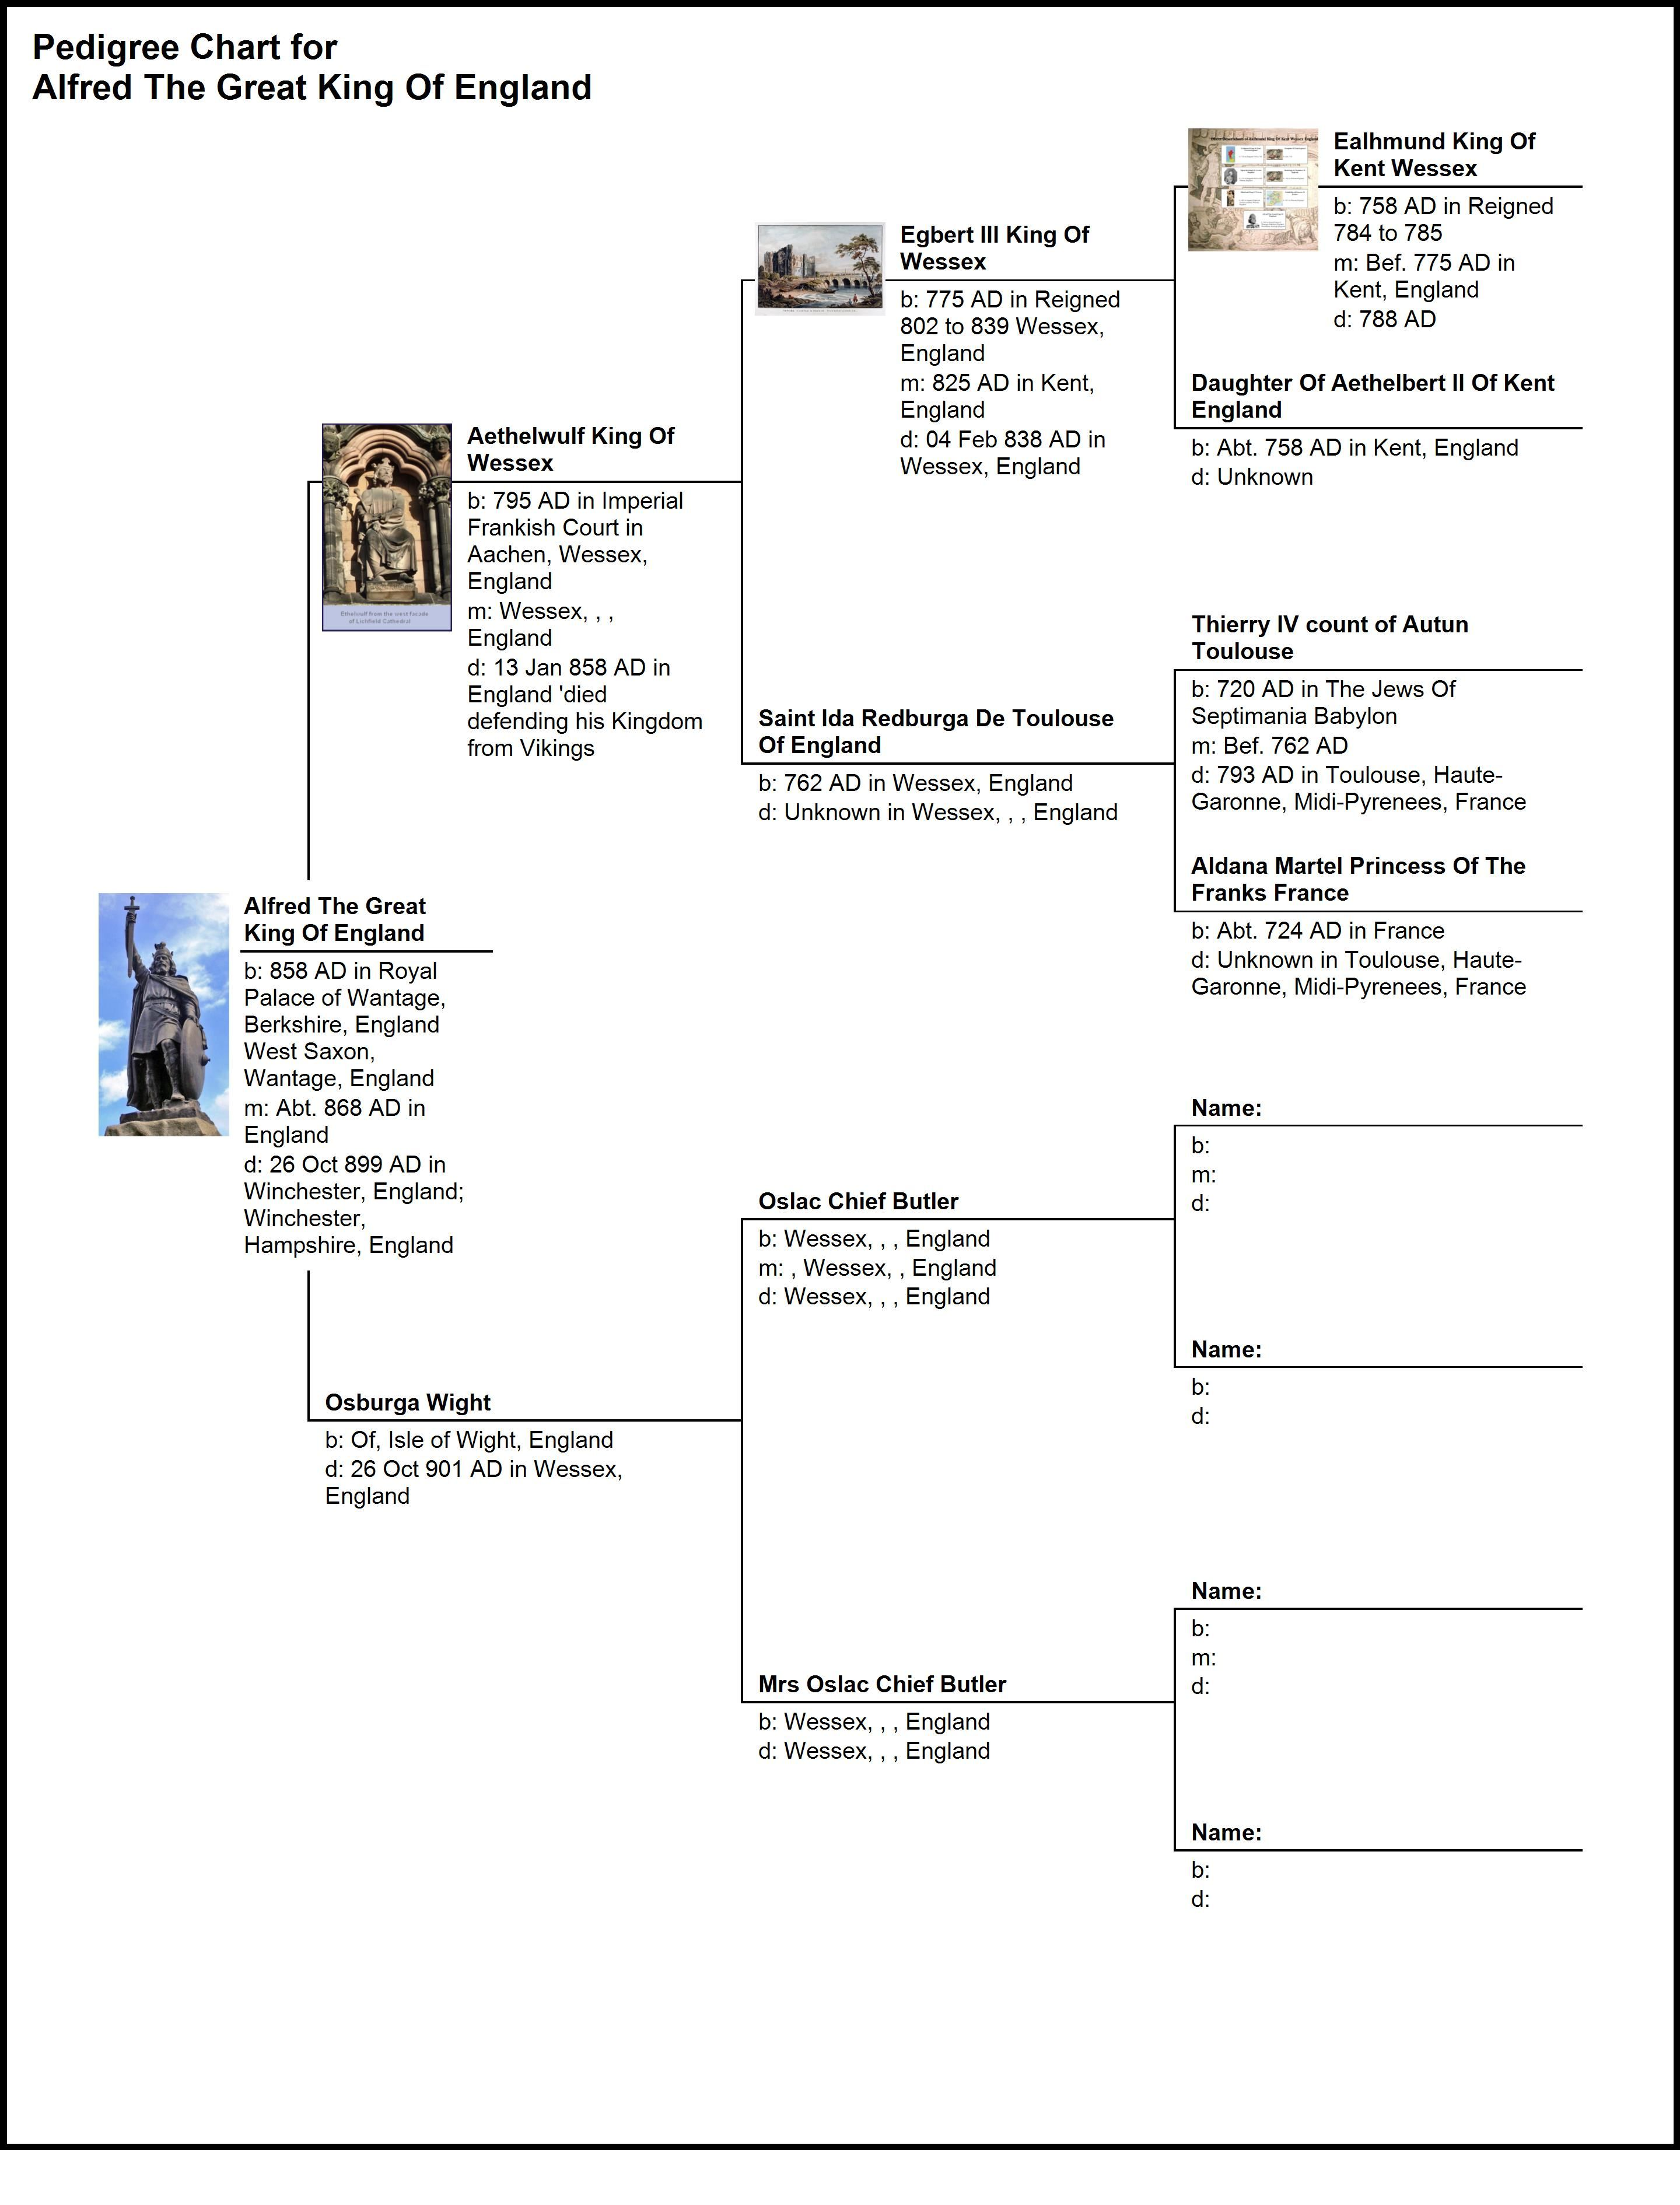 858 Alfred The Great Pedigree Chart Year 700 To 900